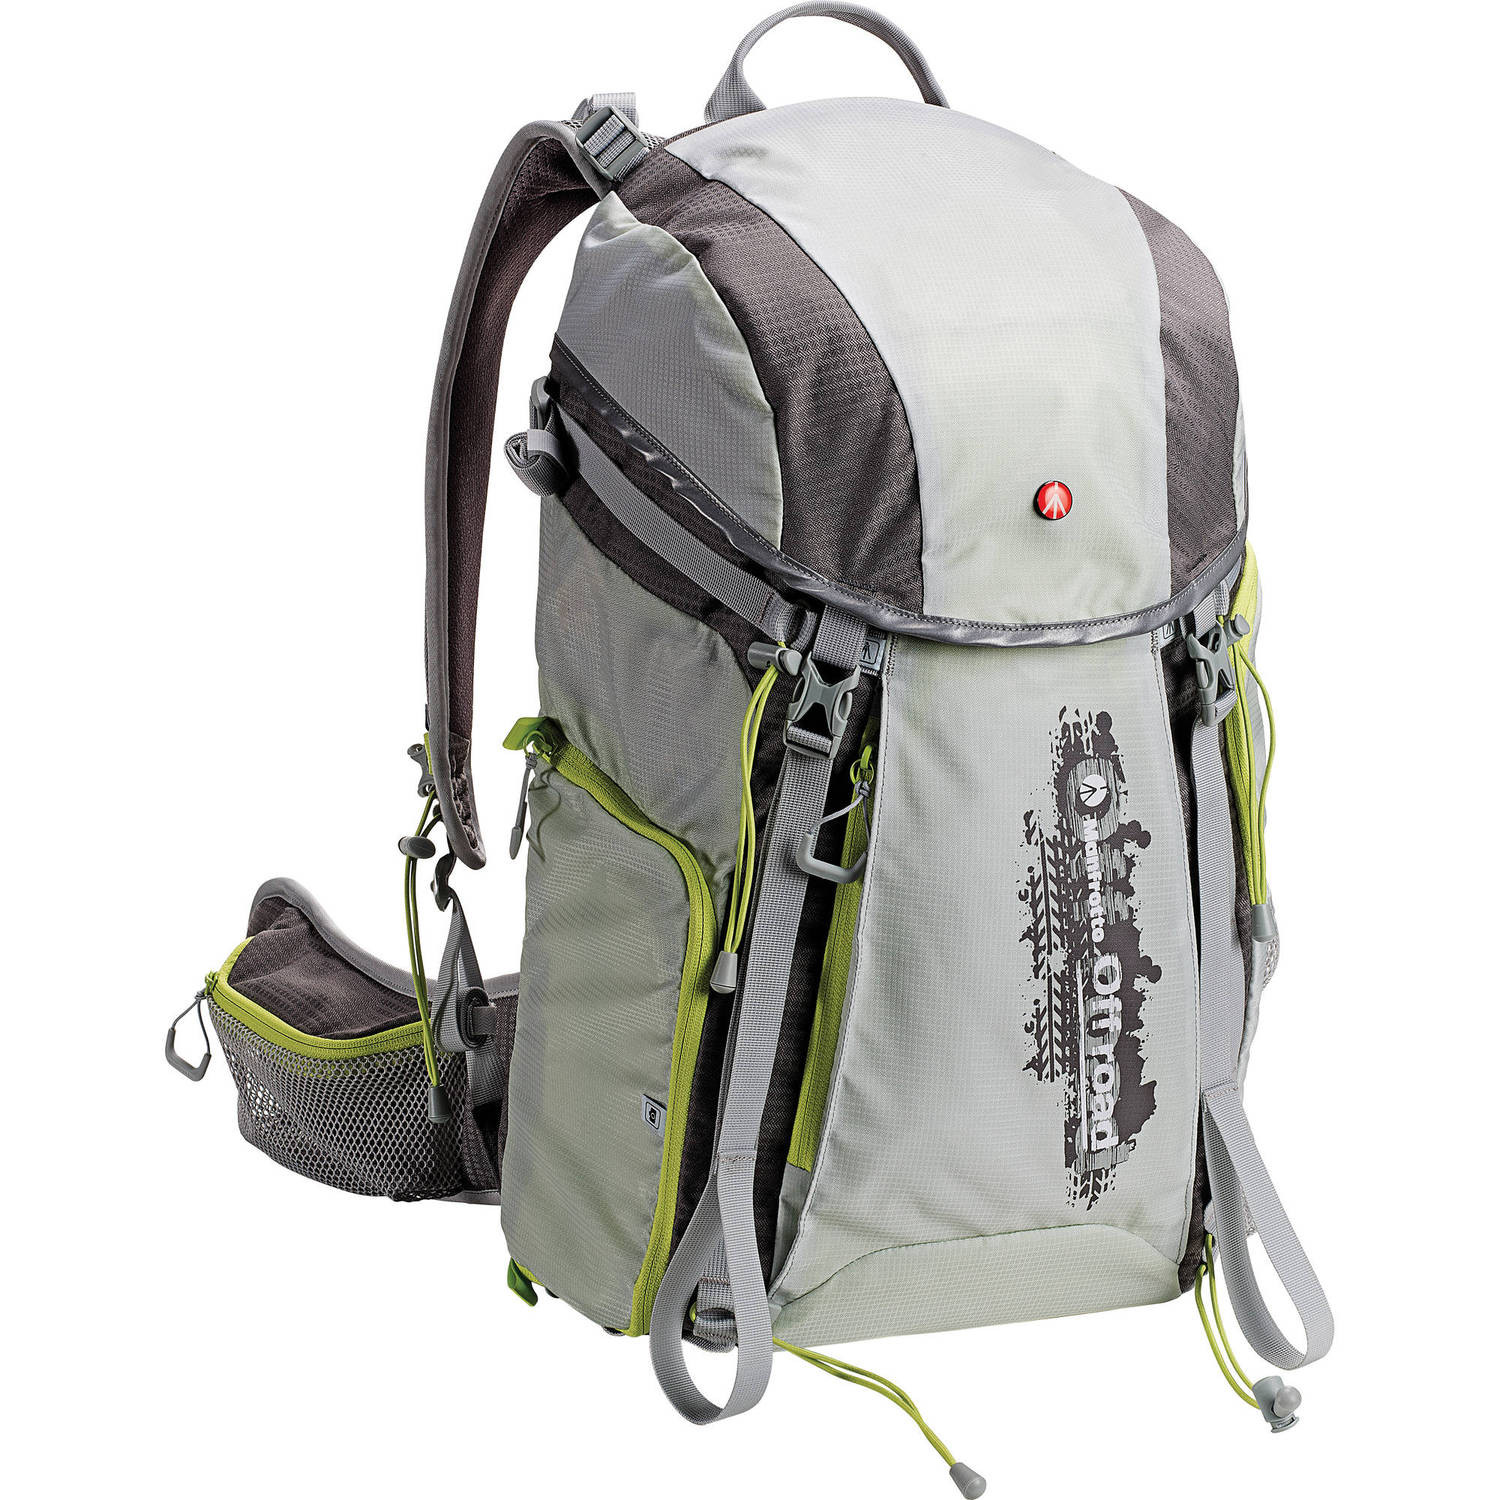 719821375814 (MB 0R-BP-30GY) MOCHILA BACKPACK GRIS HIKER 30L